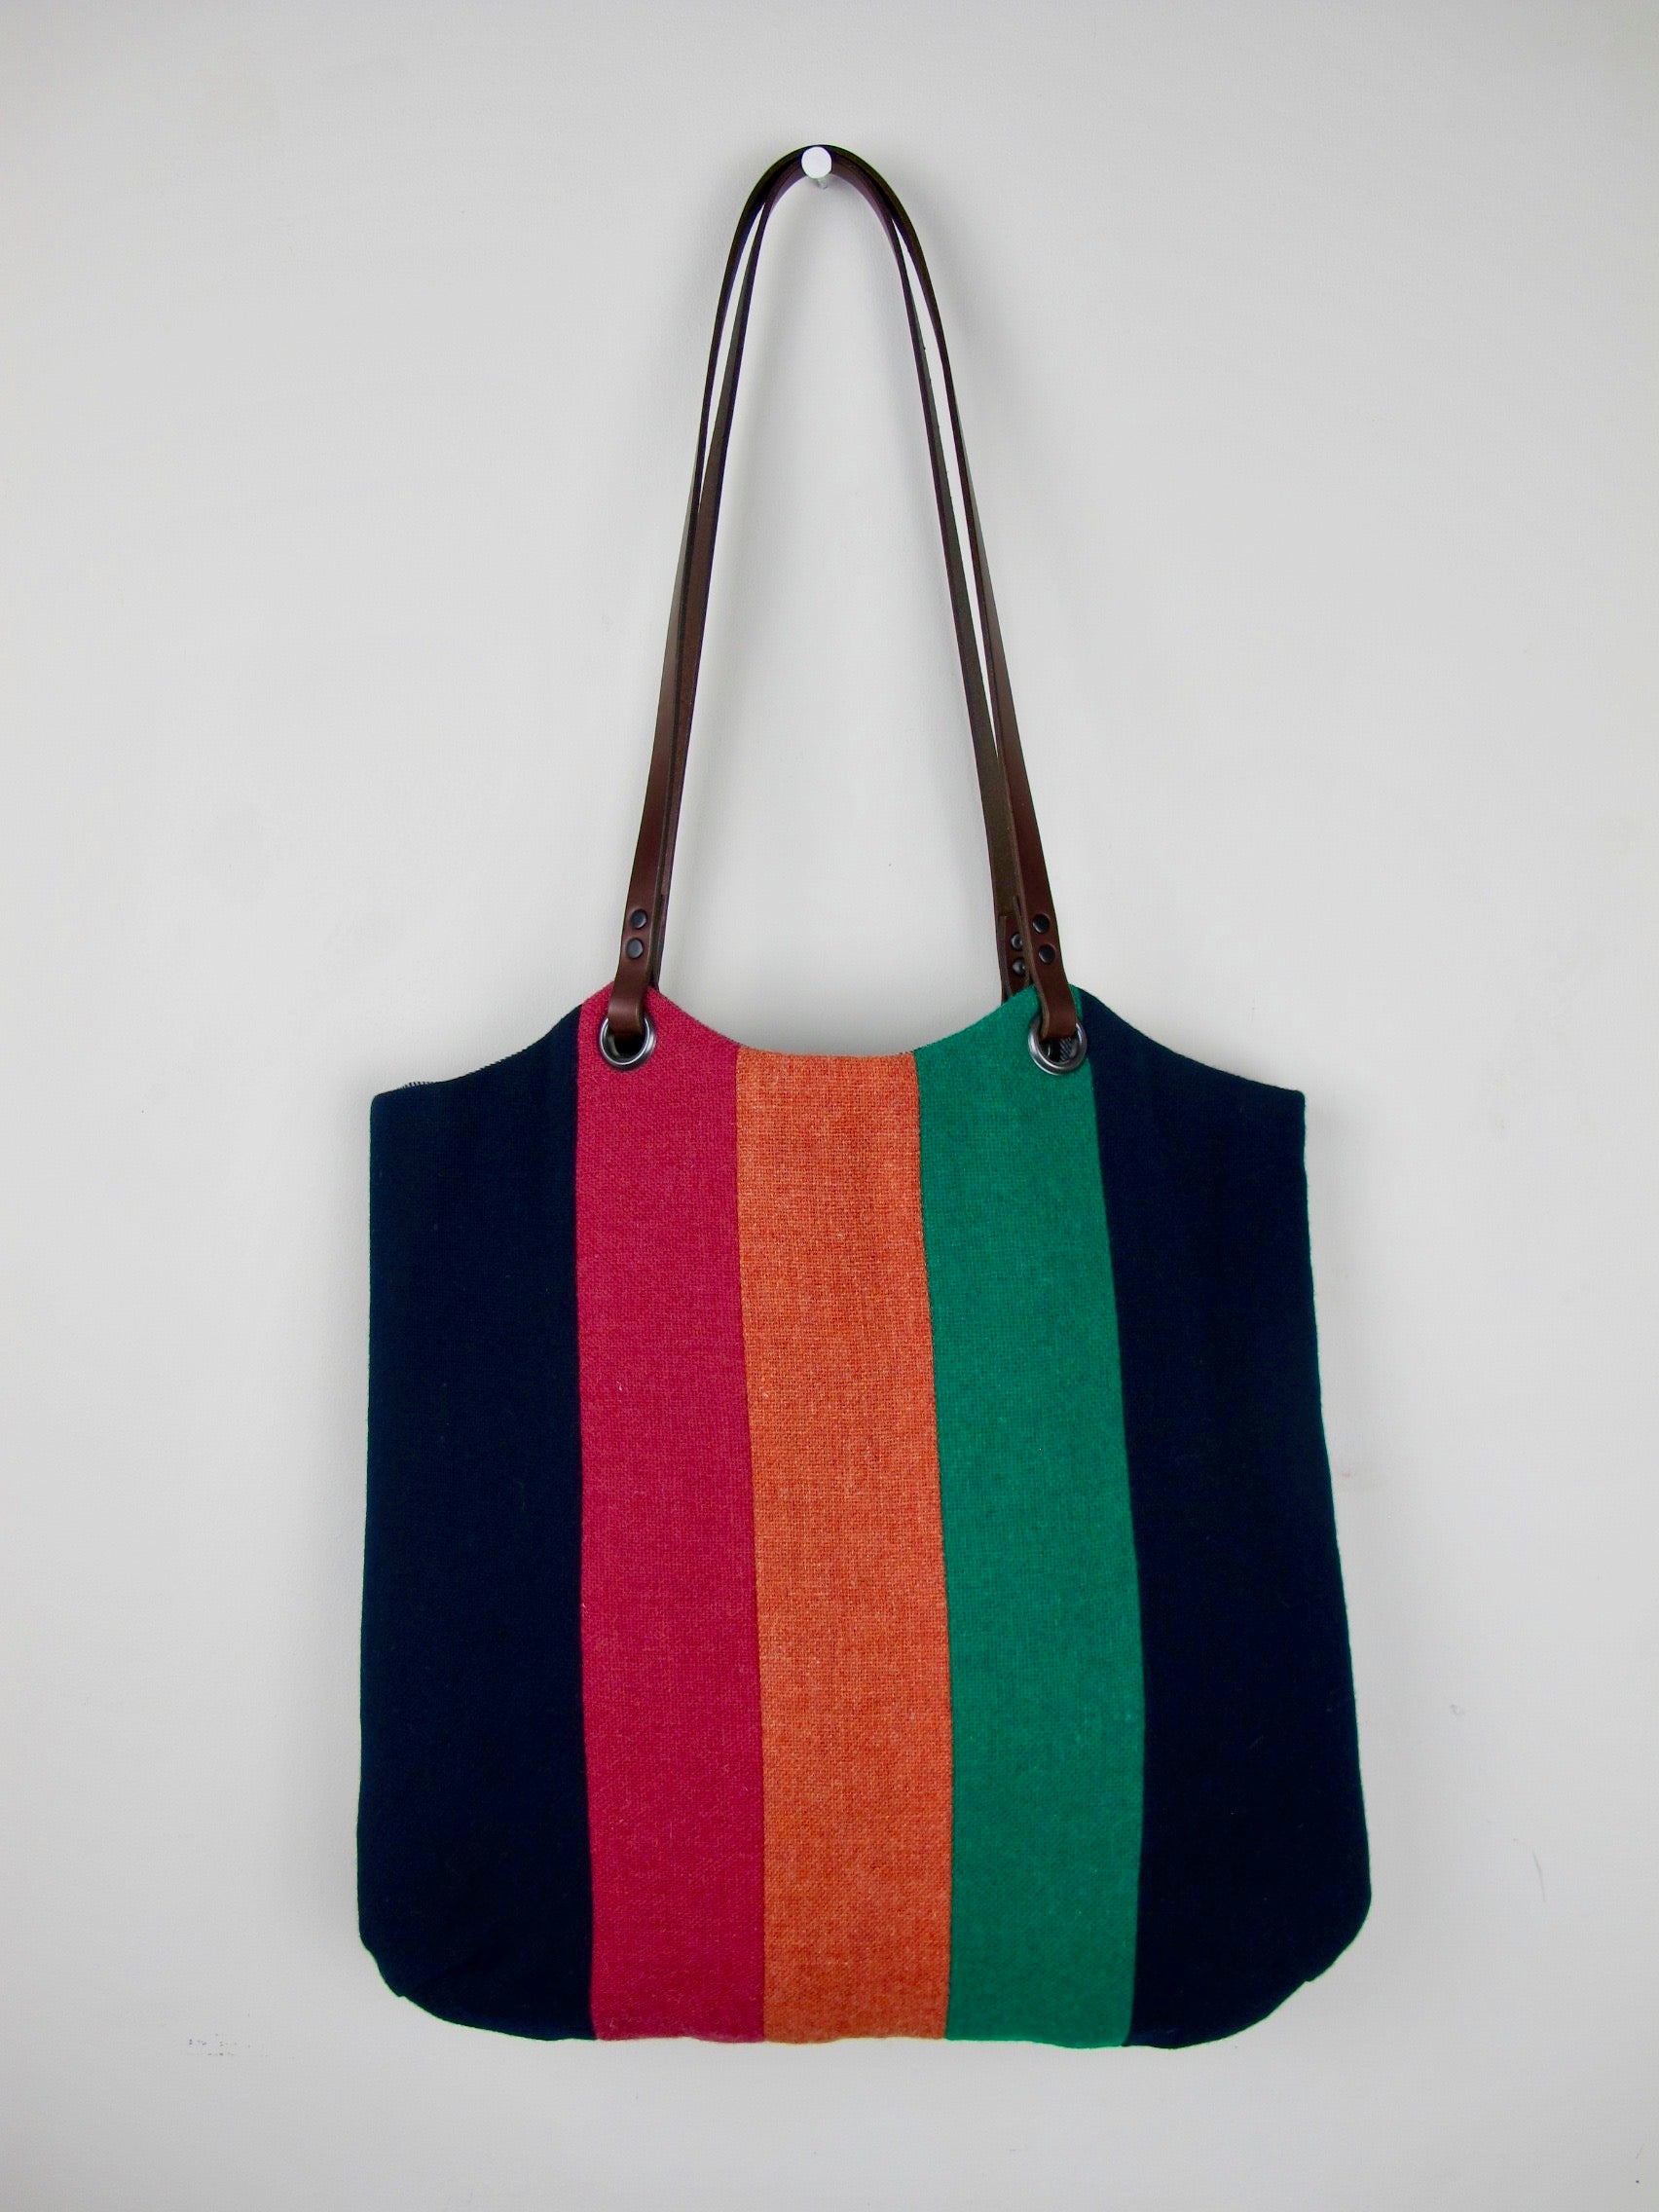 Patchwork Tote Bag - old school navy IV